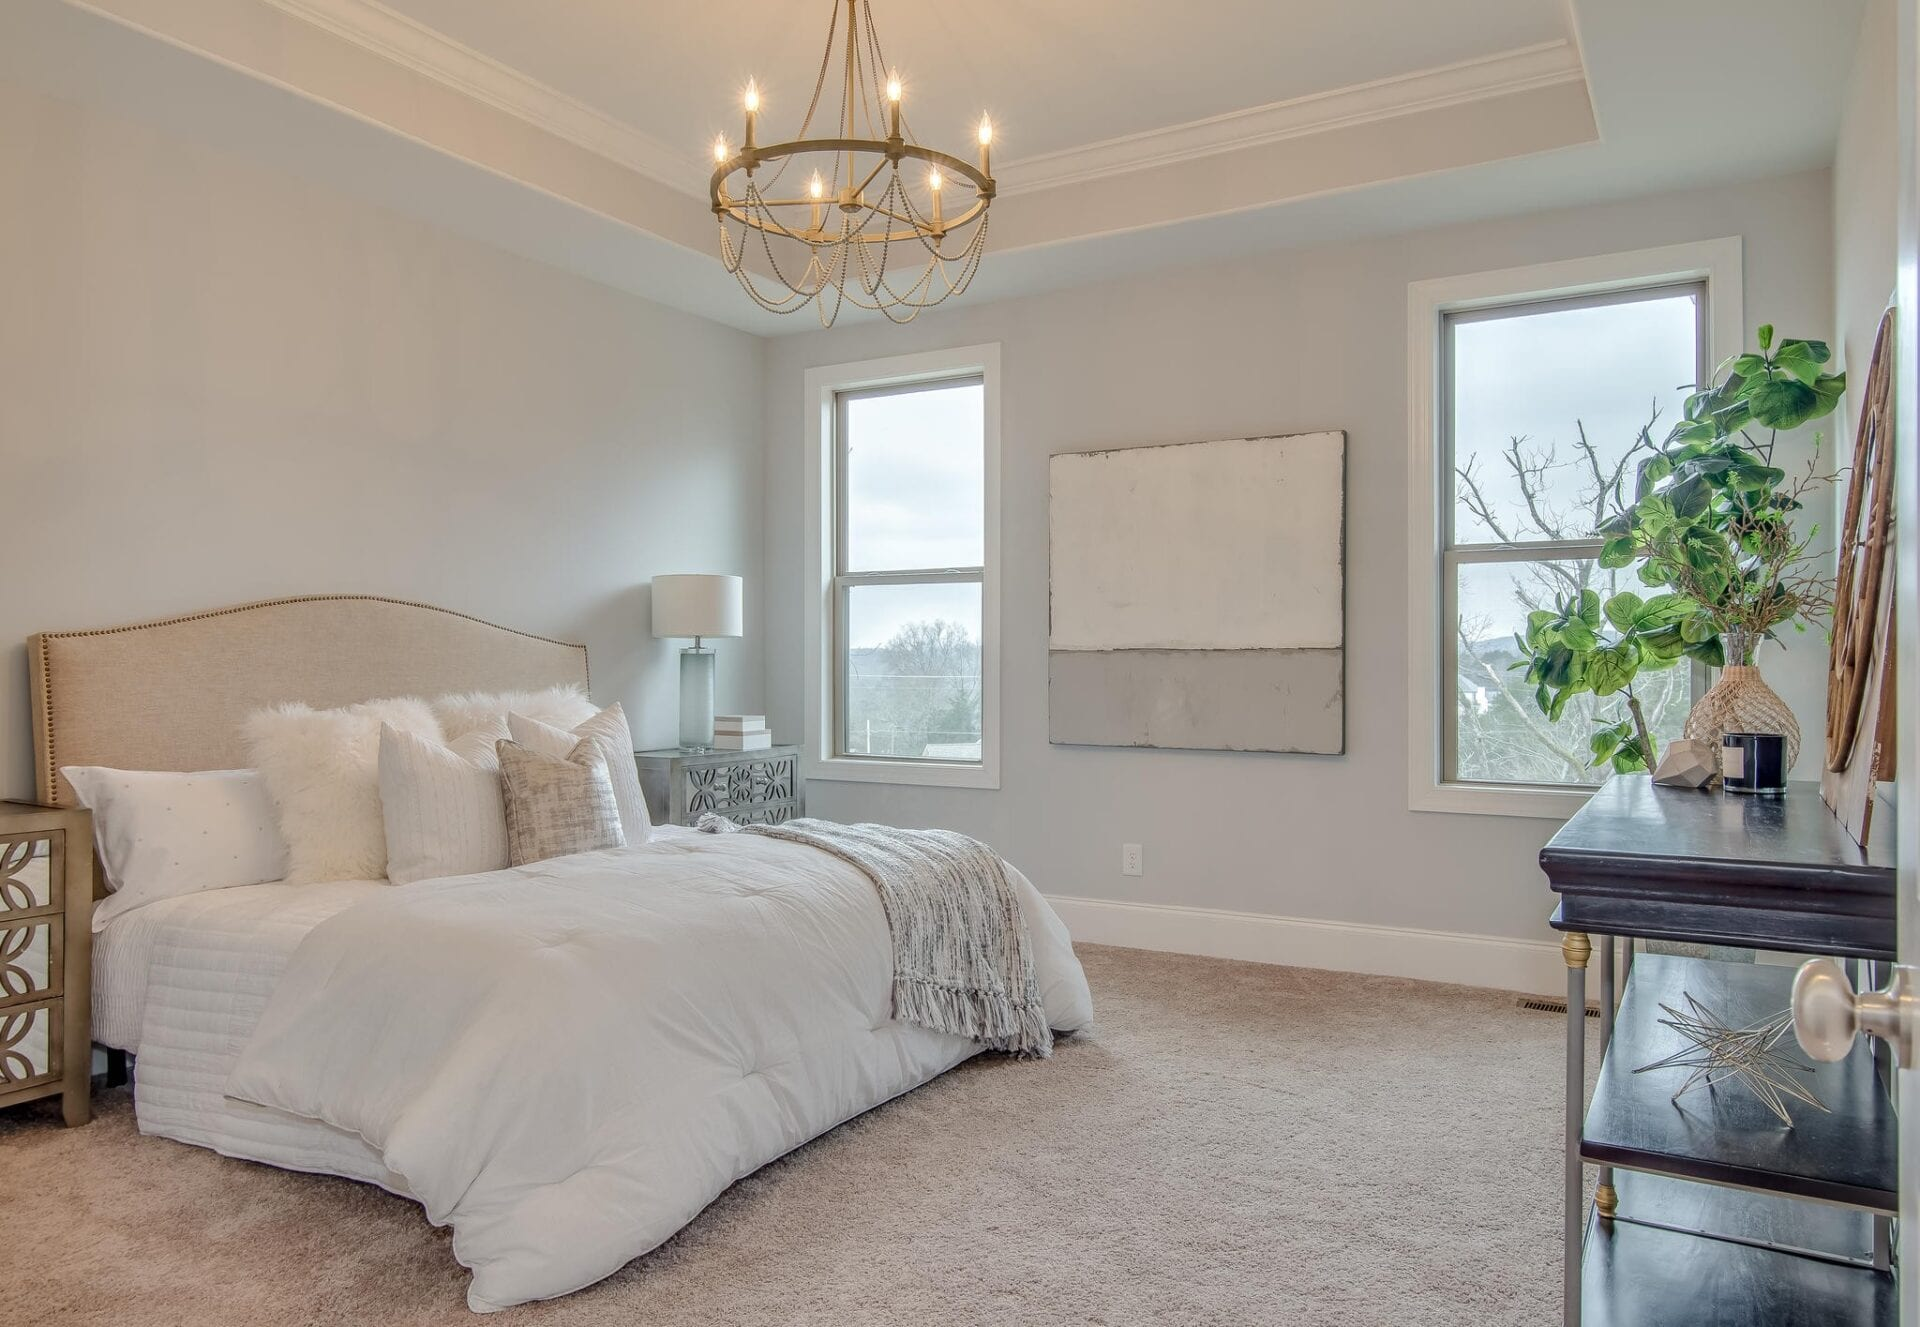 Elegant bedroom from New Home Communities and the First of the Final Home Orientation.